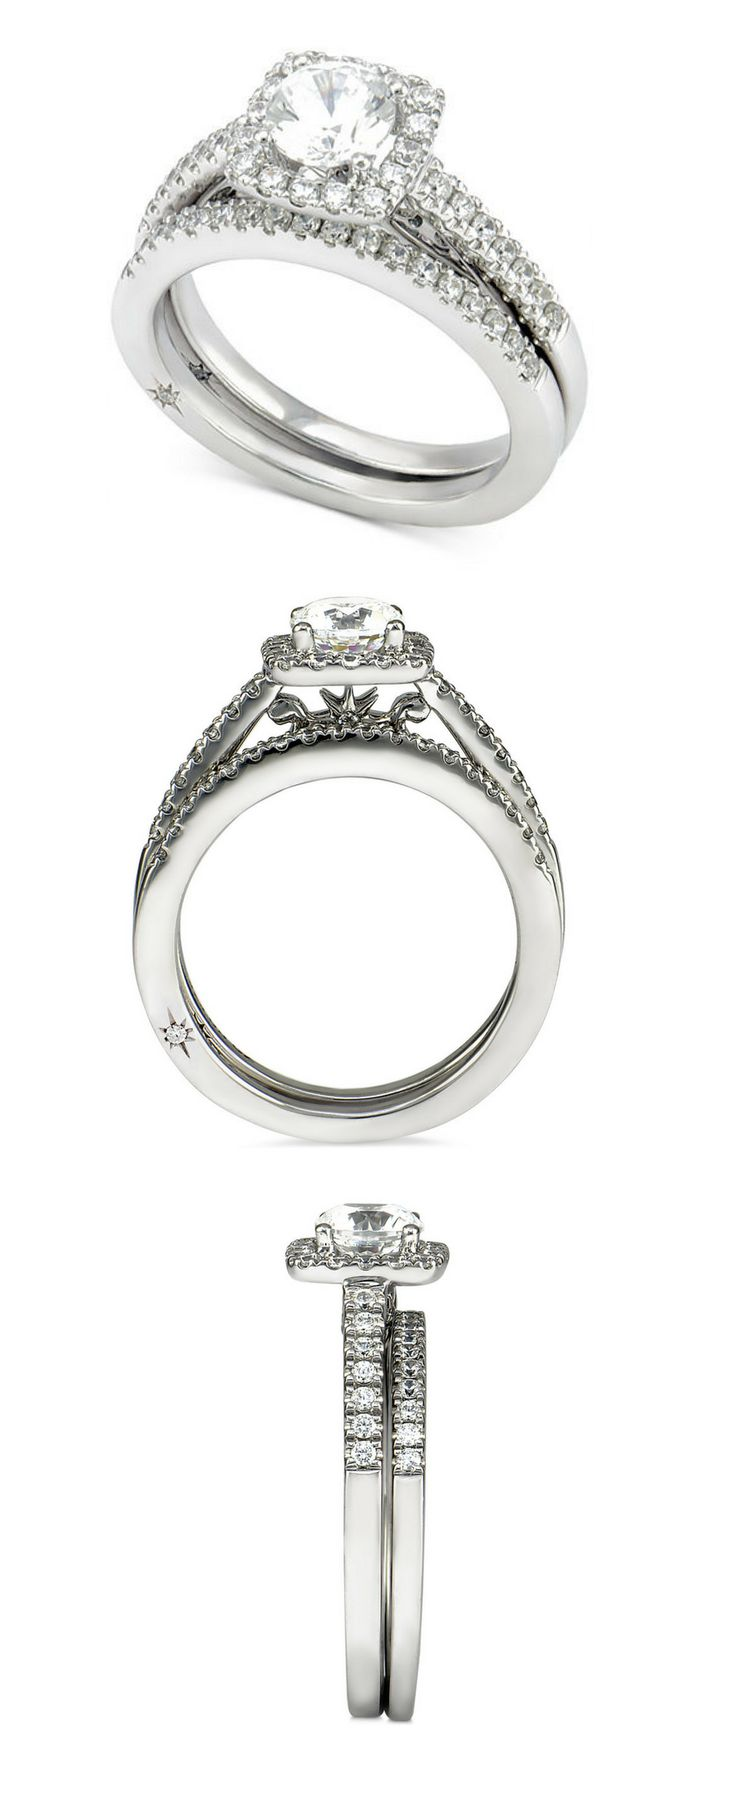 Top engagement ring or wedding band, with diamonds